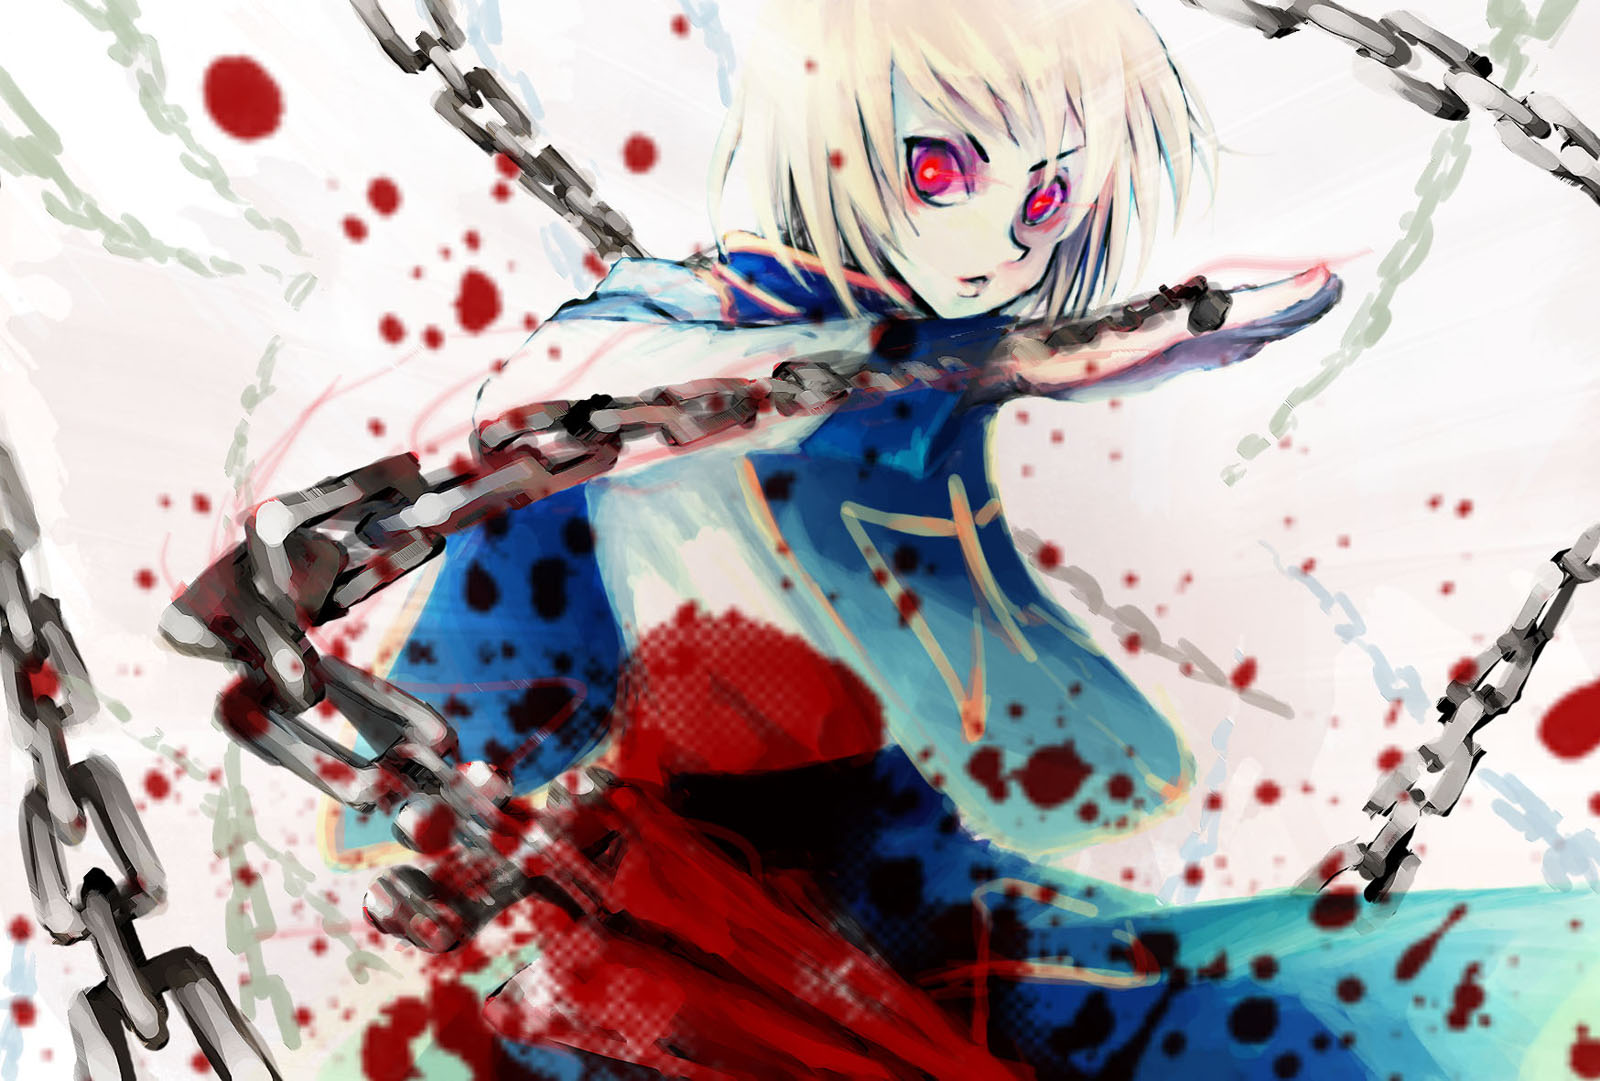 2011 Kurapika Chain Red Eye Anime HD Wallpaper Desktop BackgroundKurapika Wallpaper Backgrounds